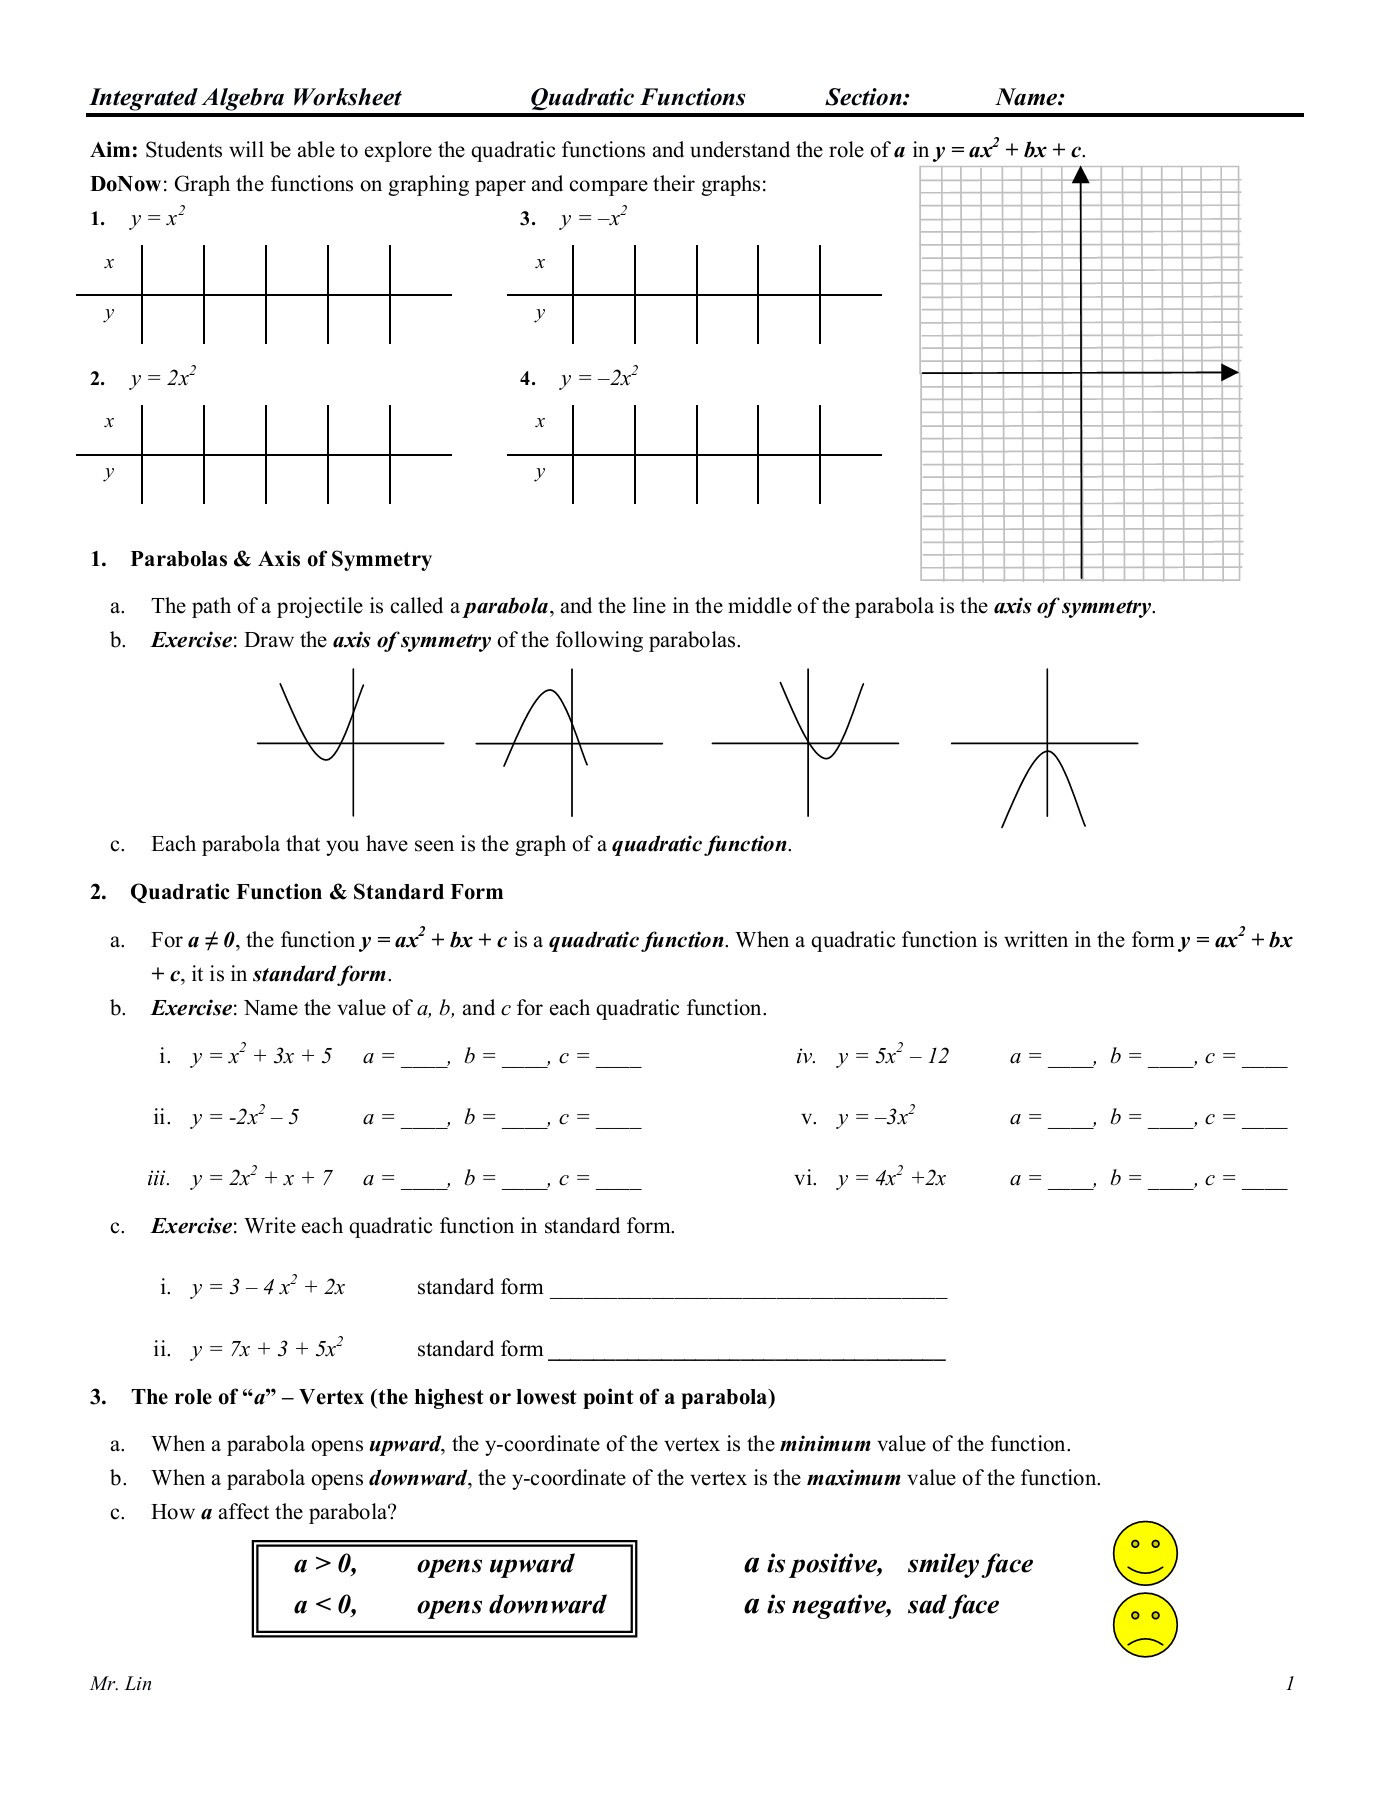 Quadratic Functions Worksheet with Answers Algebra Worksheet 09 Qudratic Functions Pages 1 5 Text